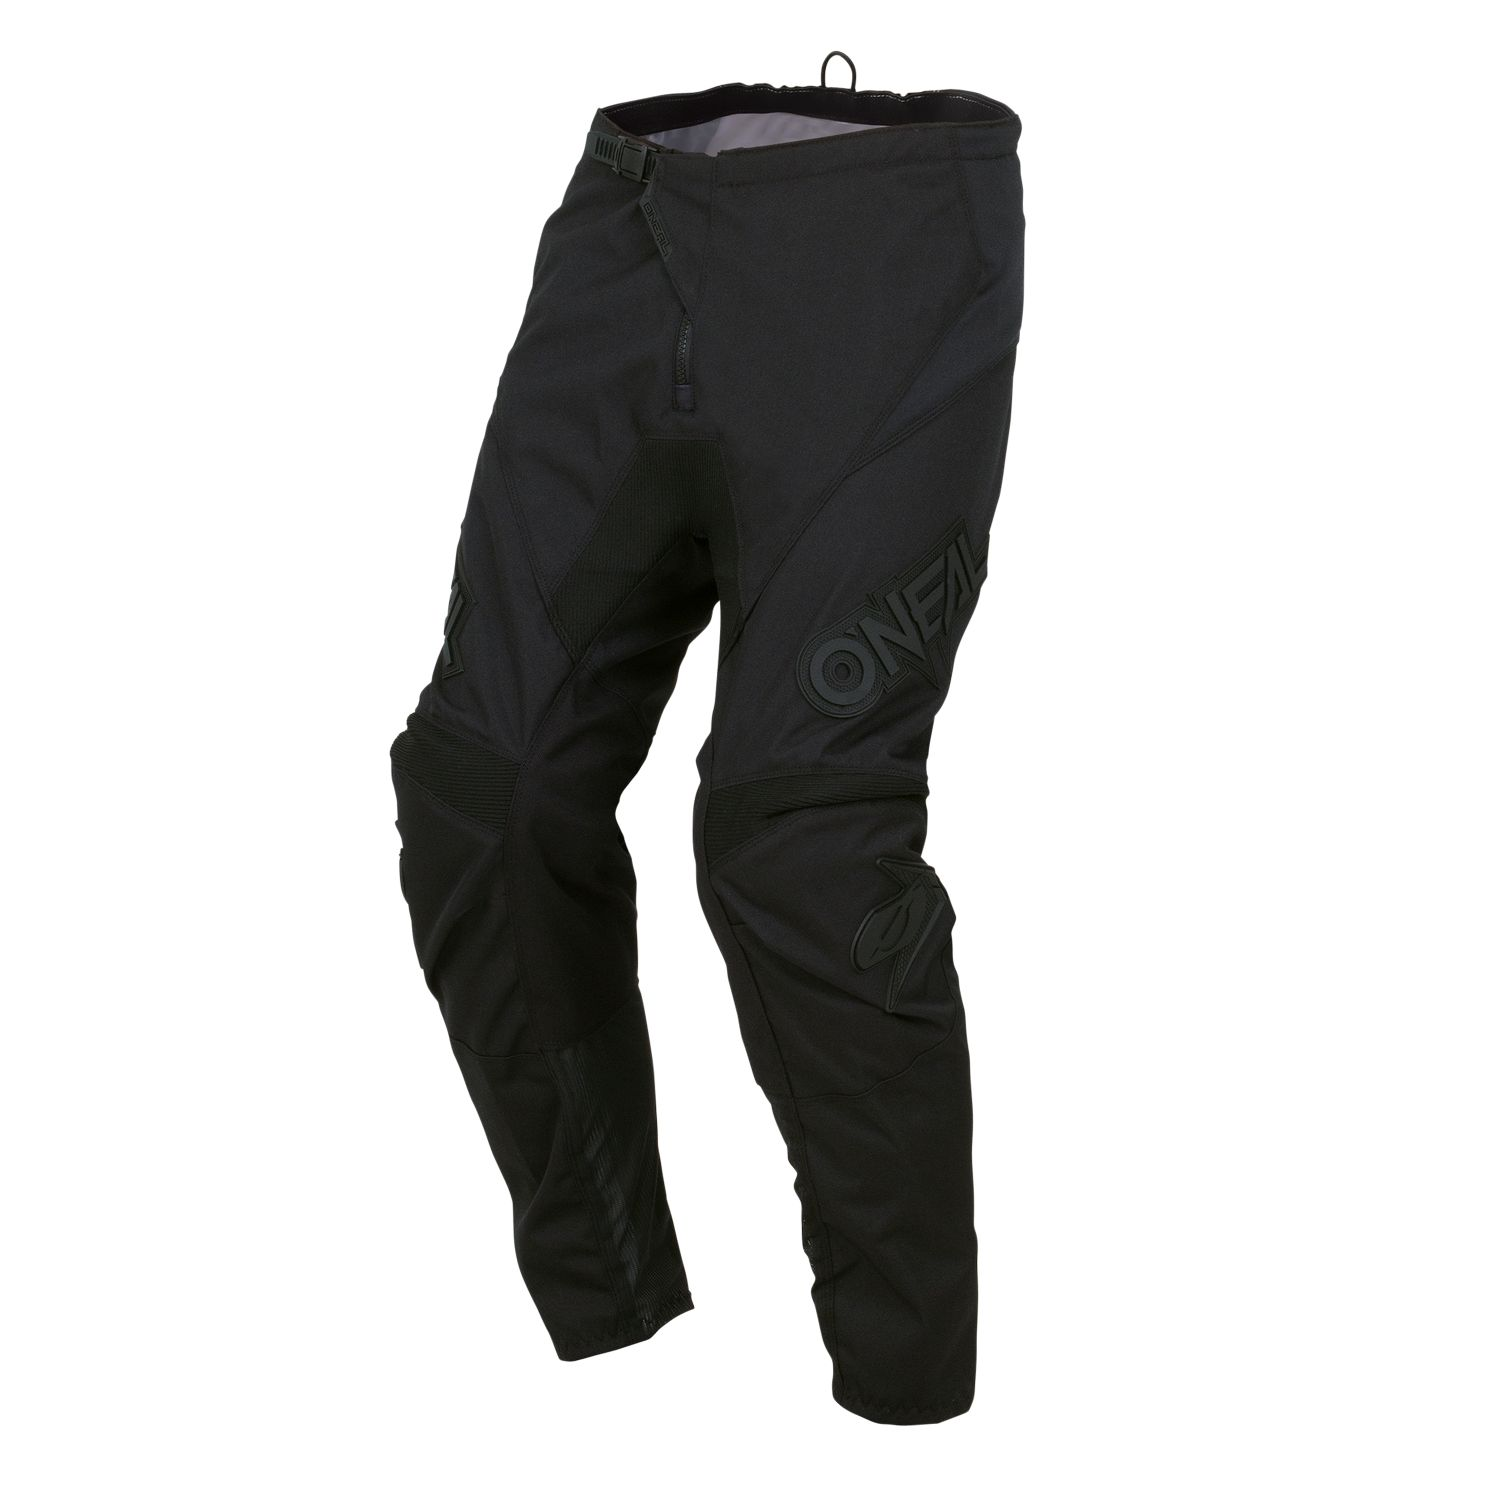 PANTALON CROSS ou BMX O'NEAL ALL BLACK ADO ADULTE T28 à 42us